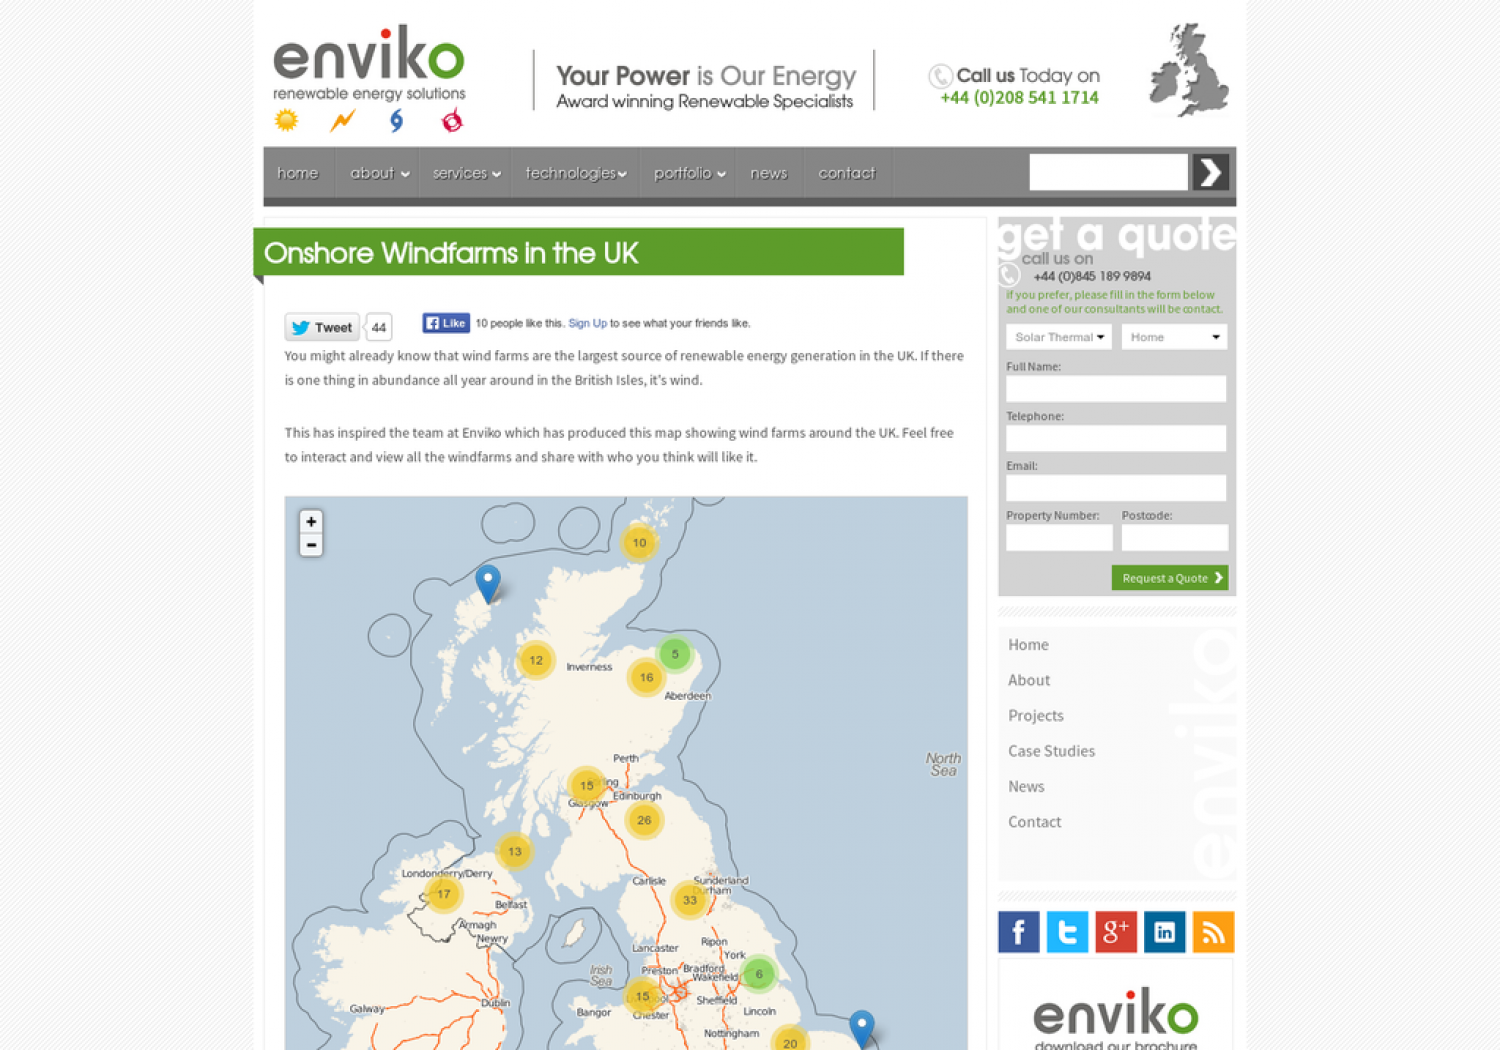 Onshore Windfarms in the UK Infographic